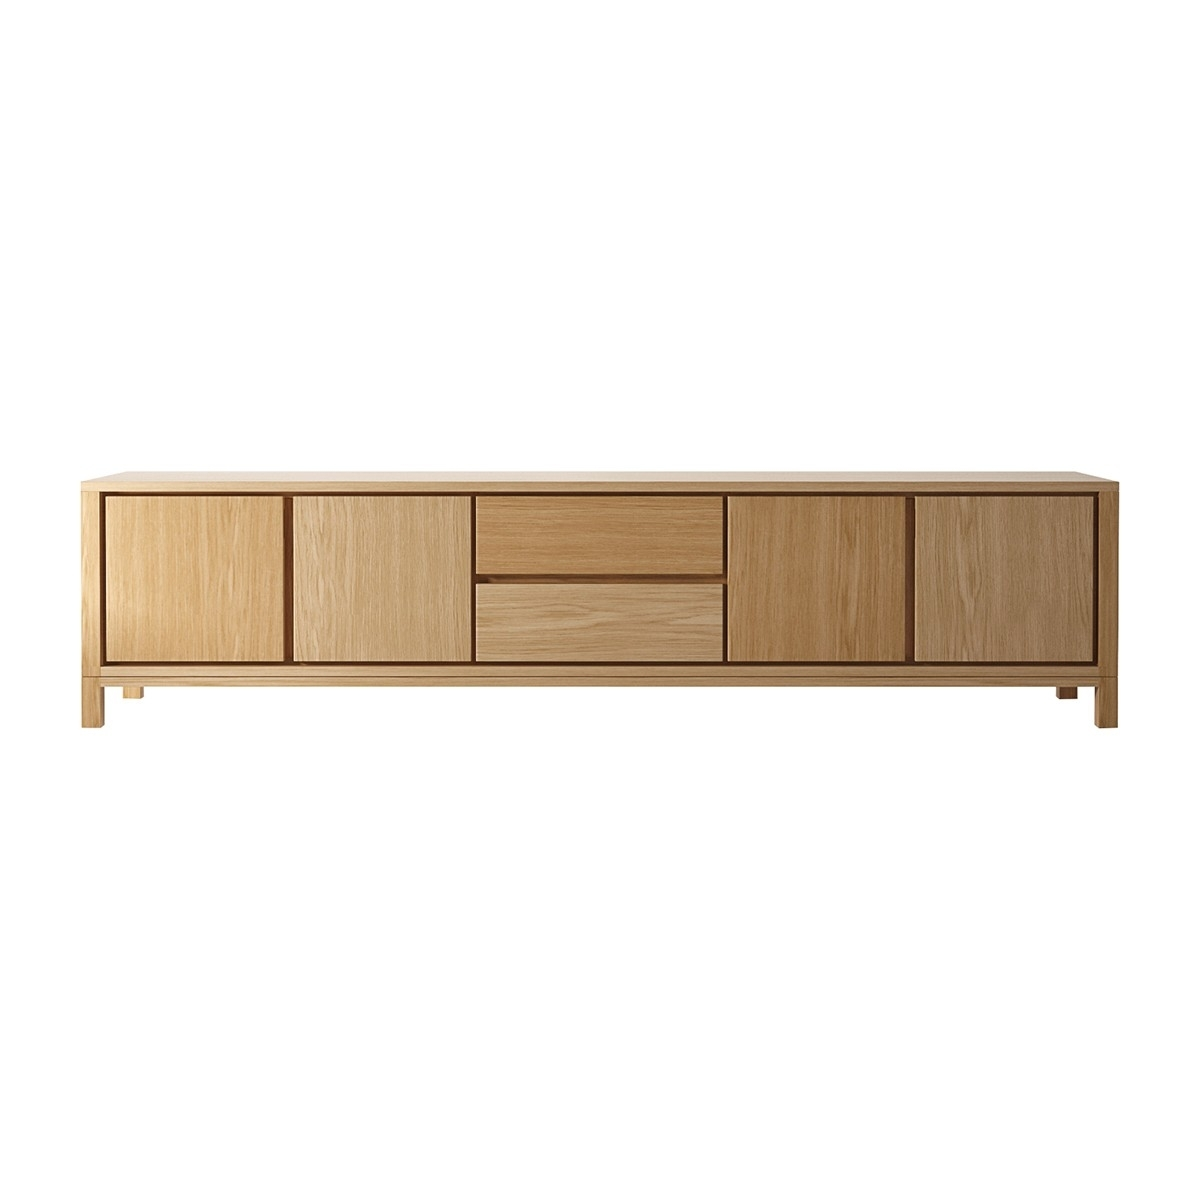 Karpenter – Solid Sideboard 2 Drawers & 4 Doors – Modern Sideboards Within Most Popular Open Shelf Brass 4 Drawer Sideboards (View 15 of 20)